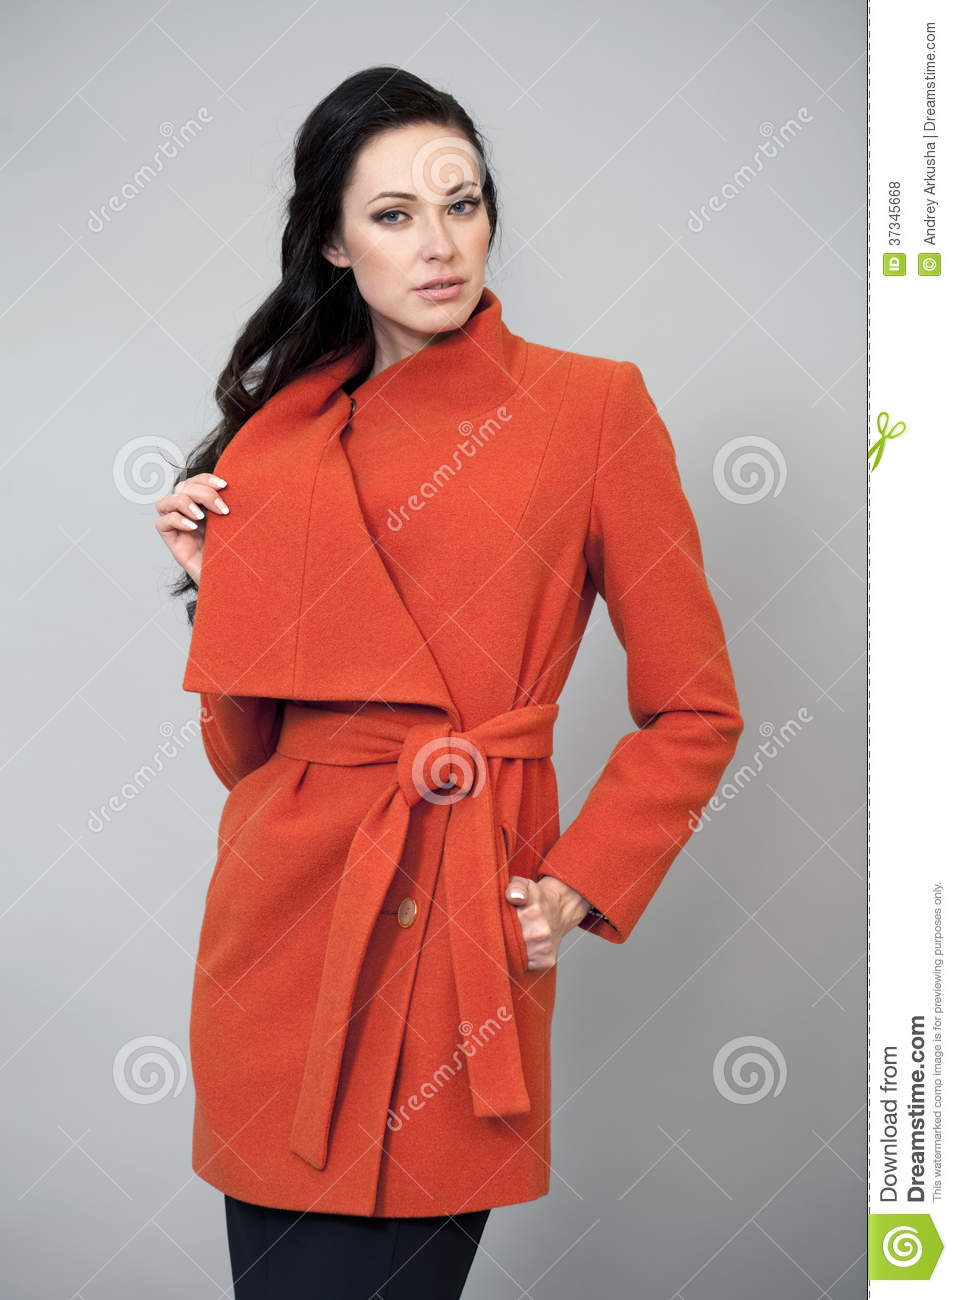 Young woman in a bright orange coat